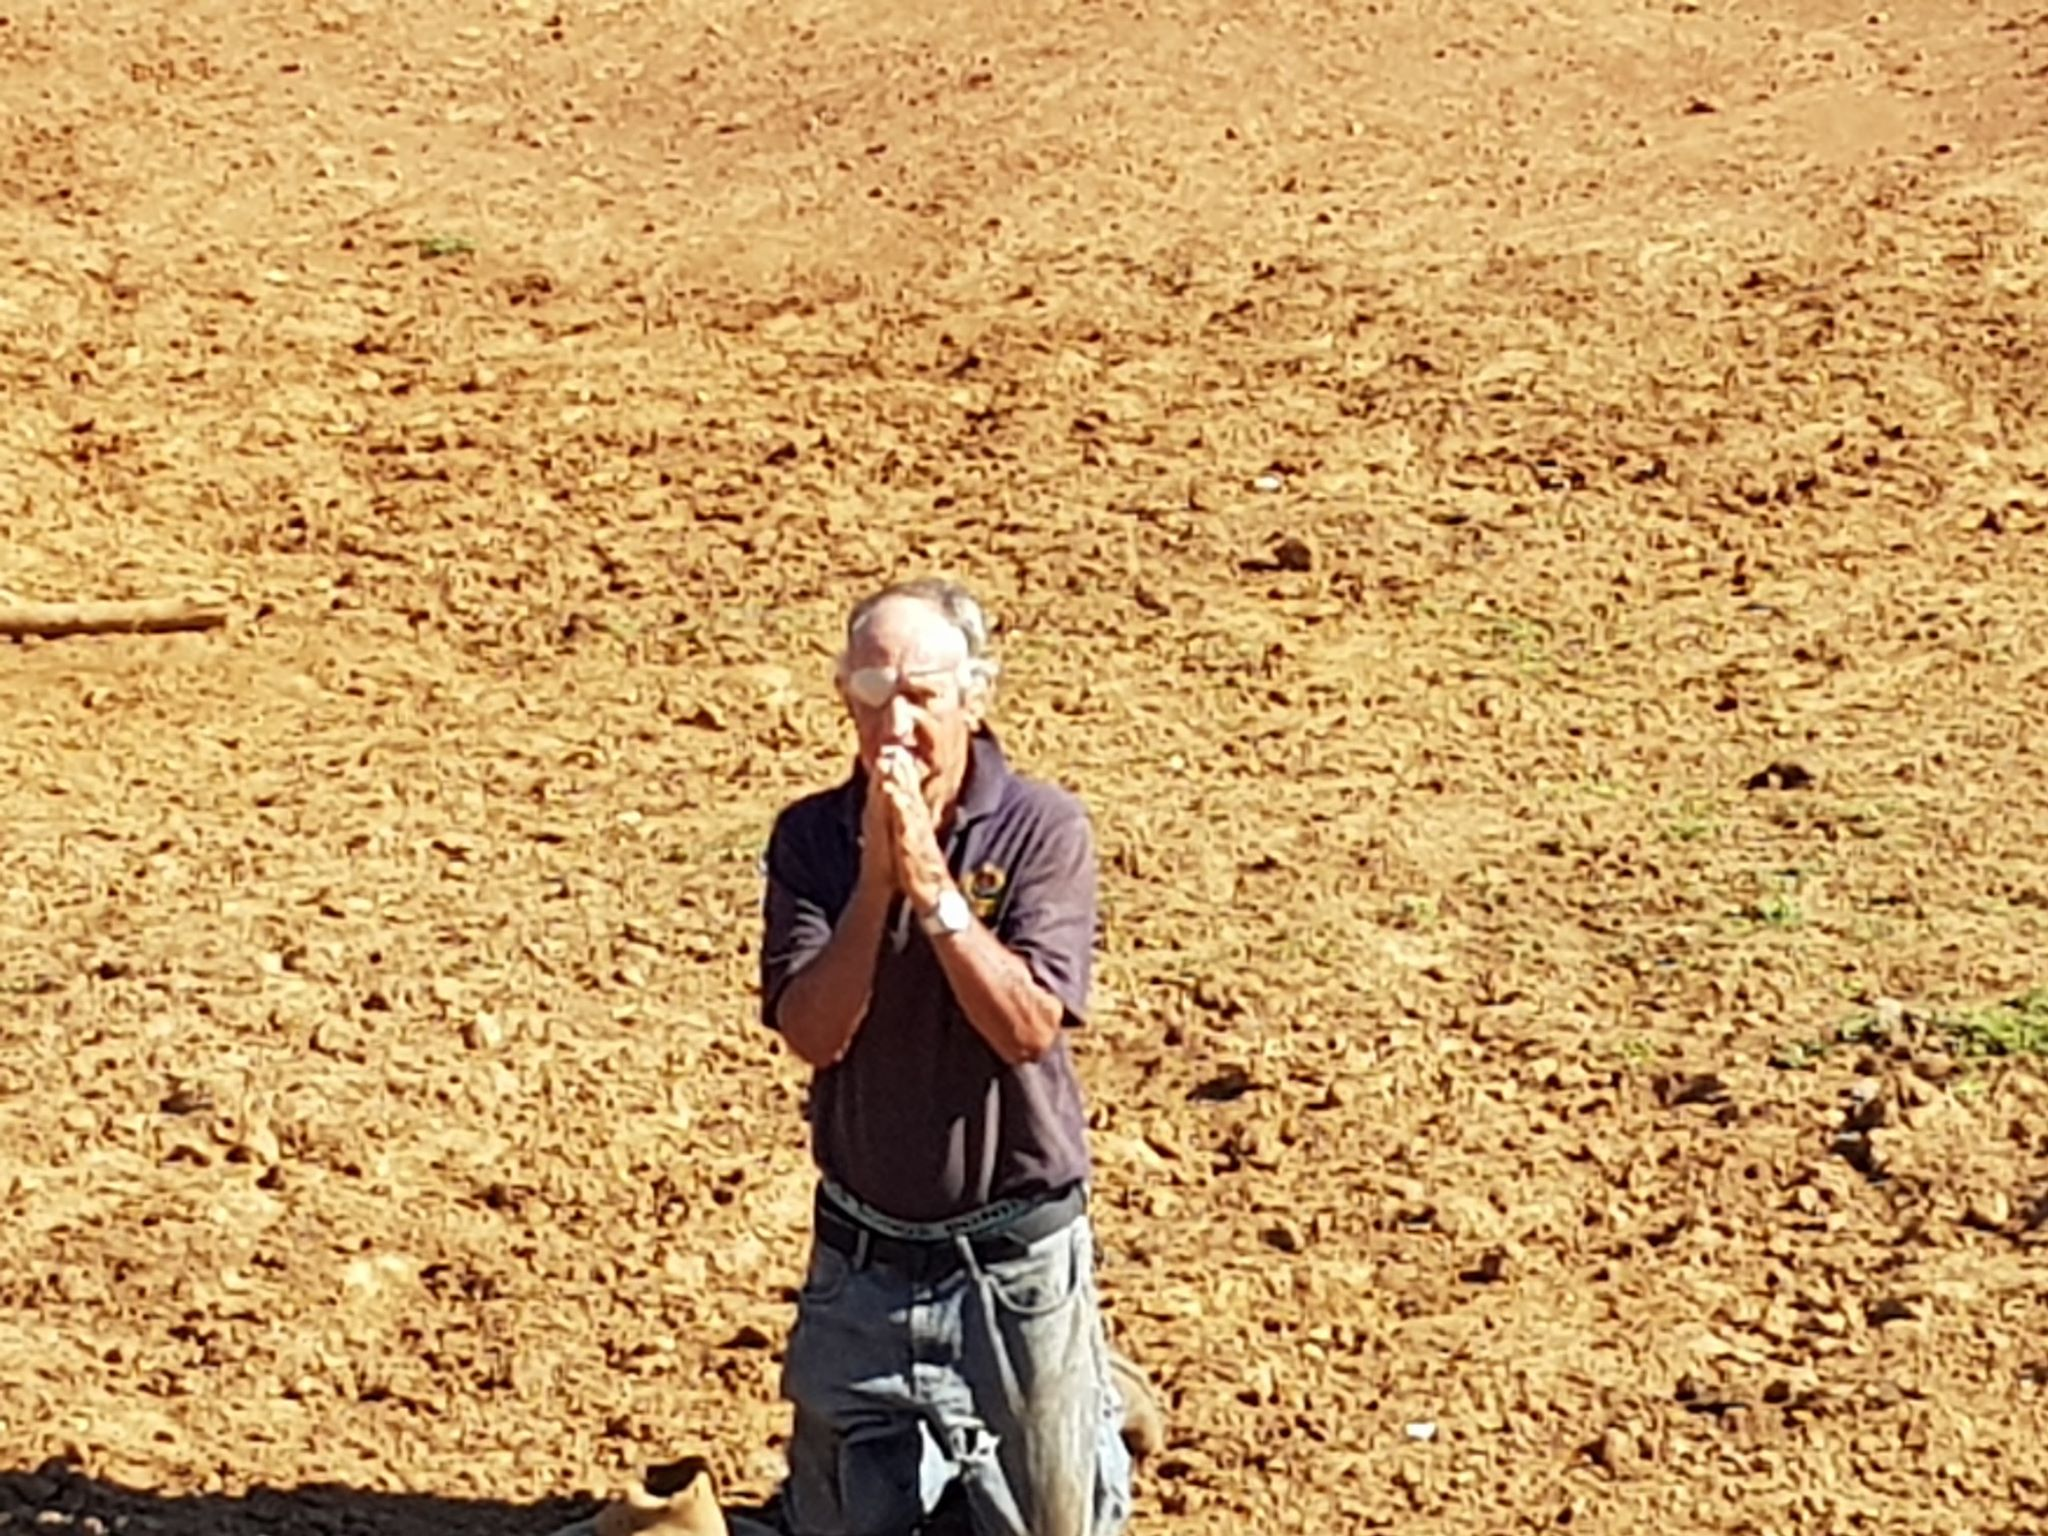 November 2018 Alf King was photographed praying for rain in a dry dam.